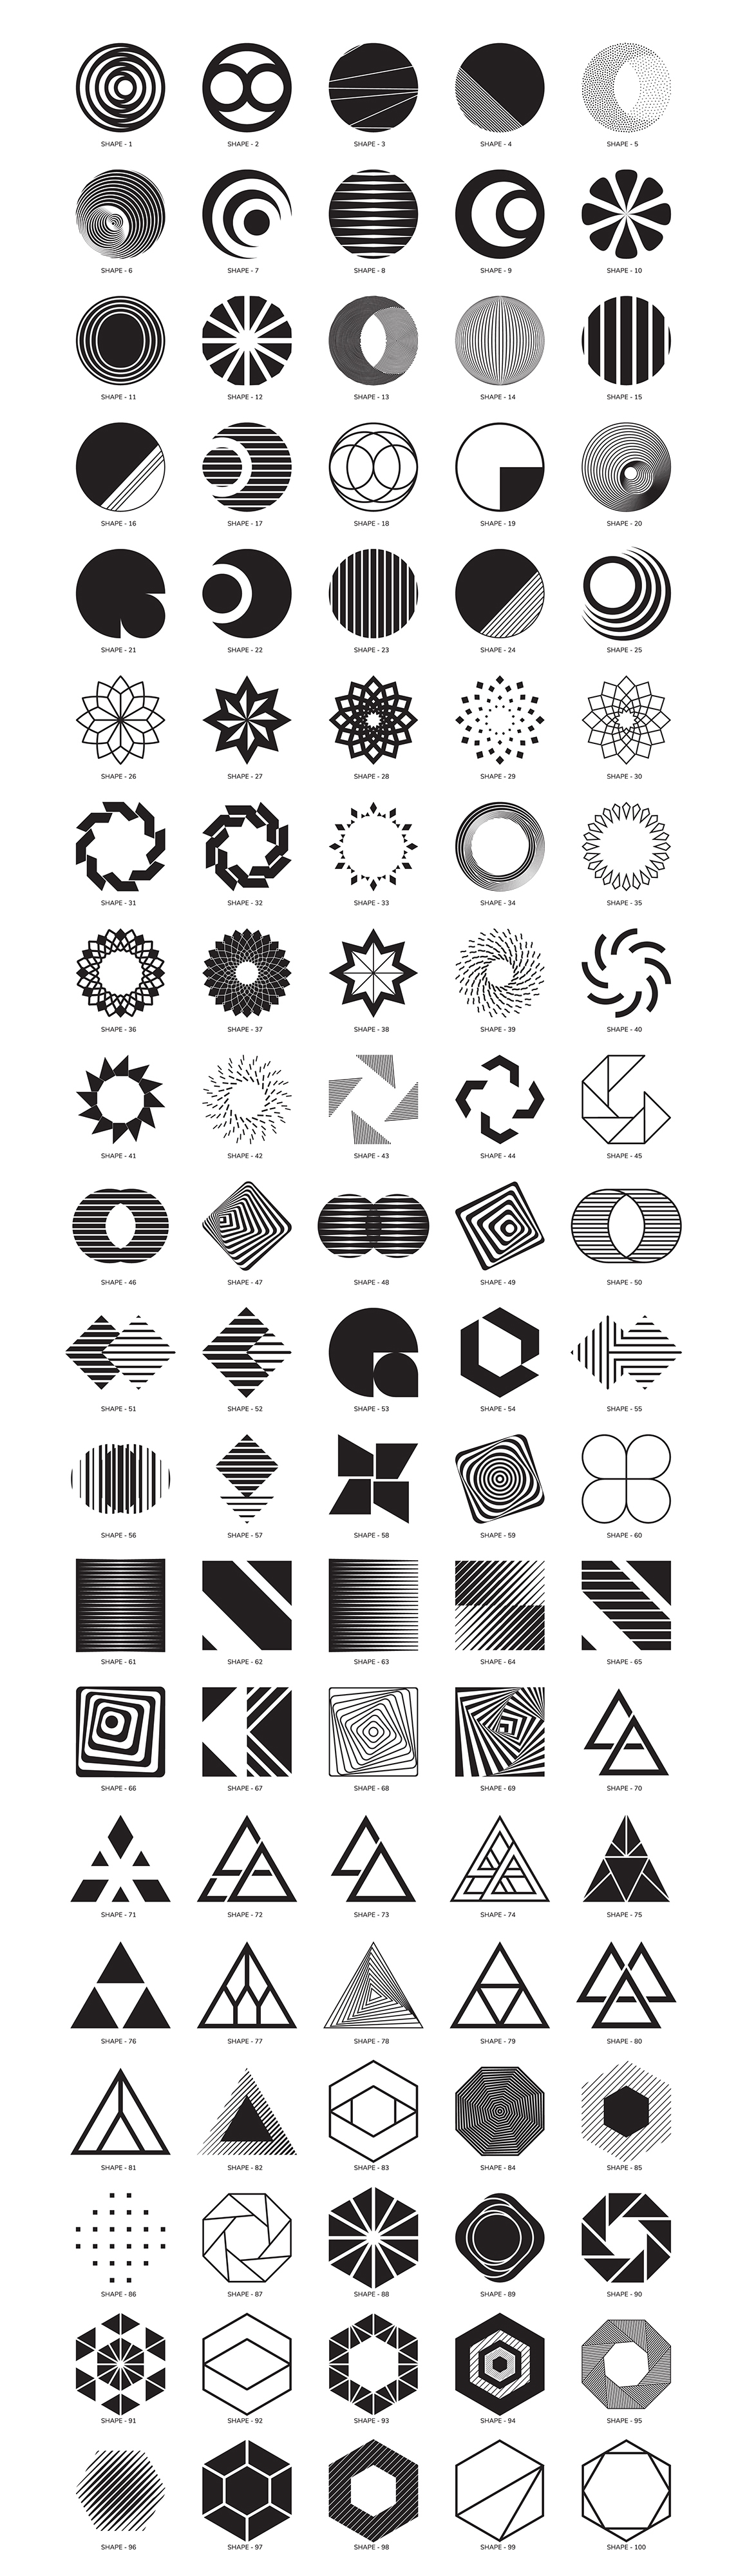 100 Geometric Shapes - Part 2